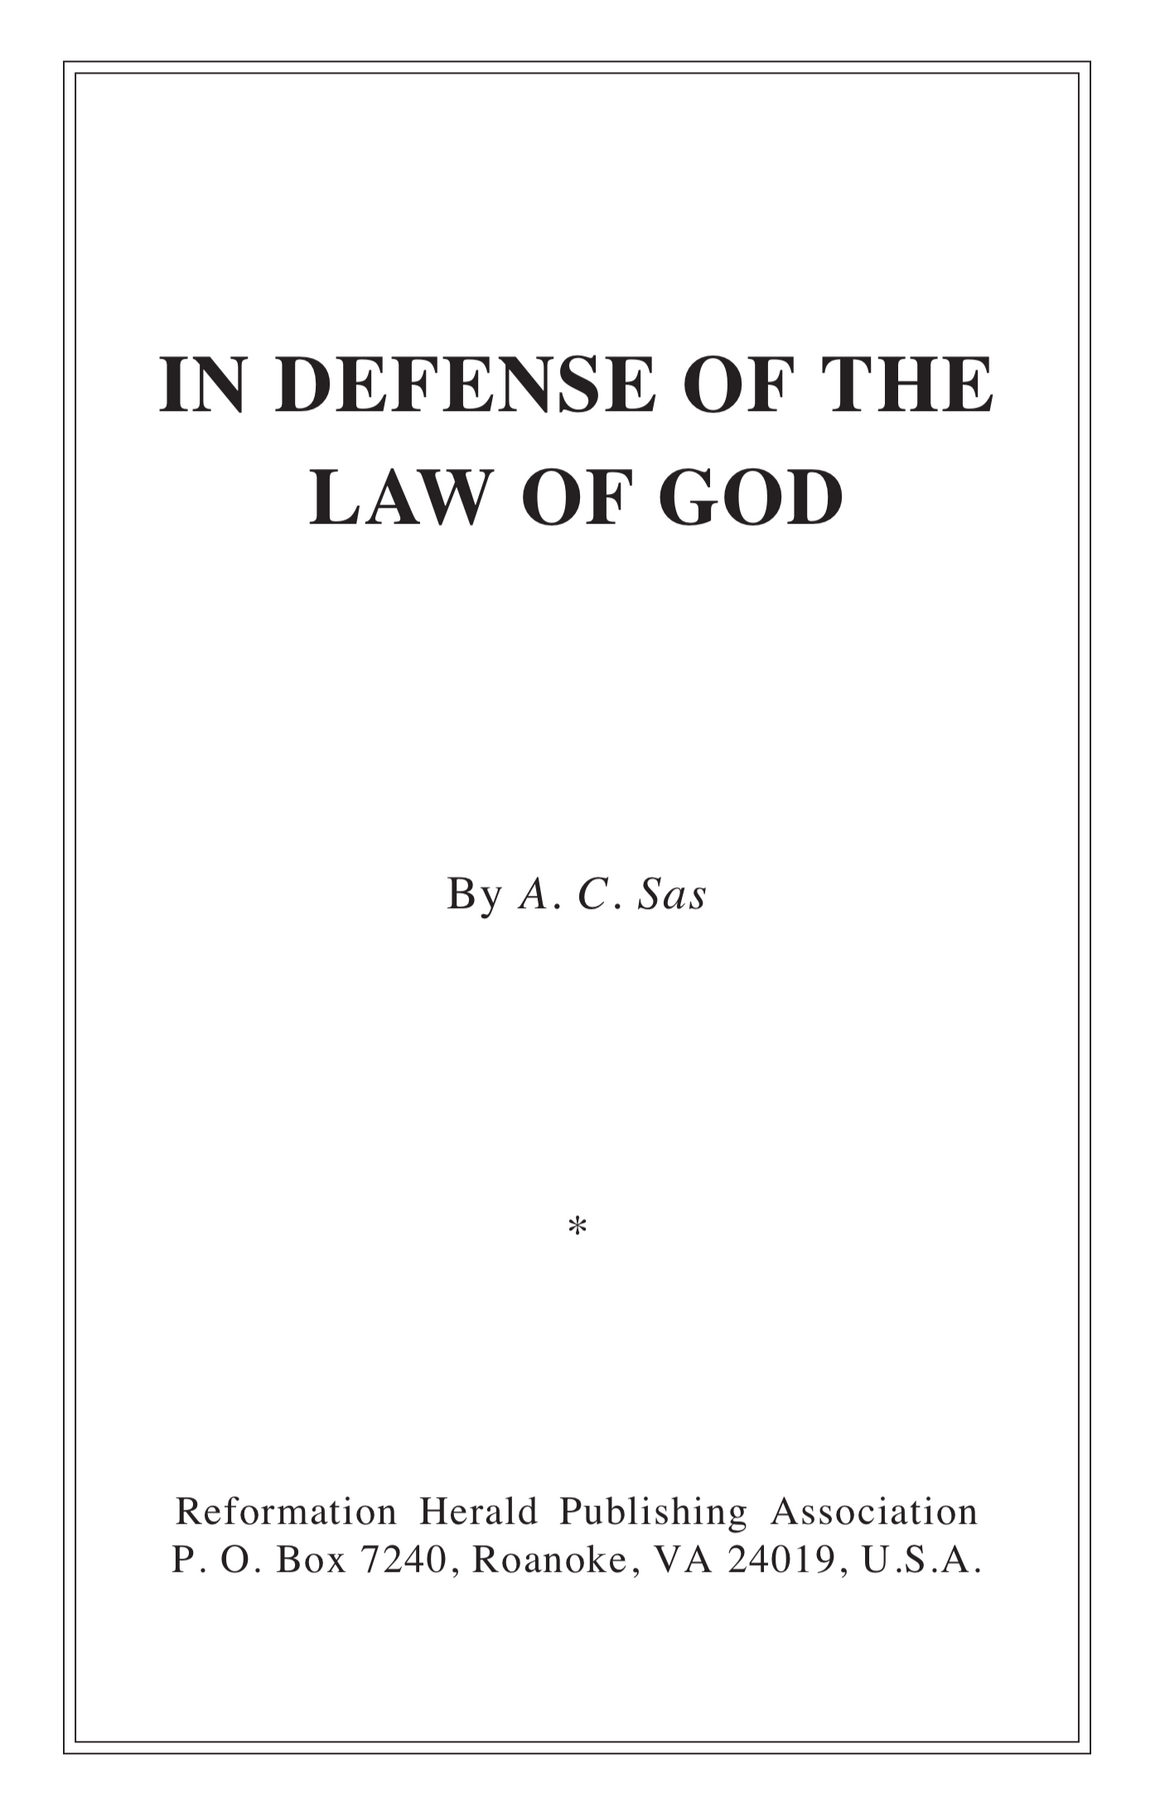 In Defense of the Law of God